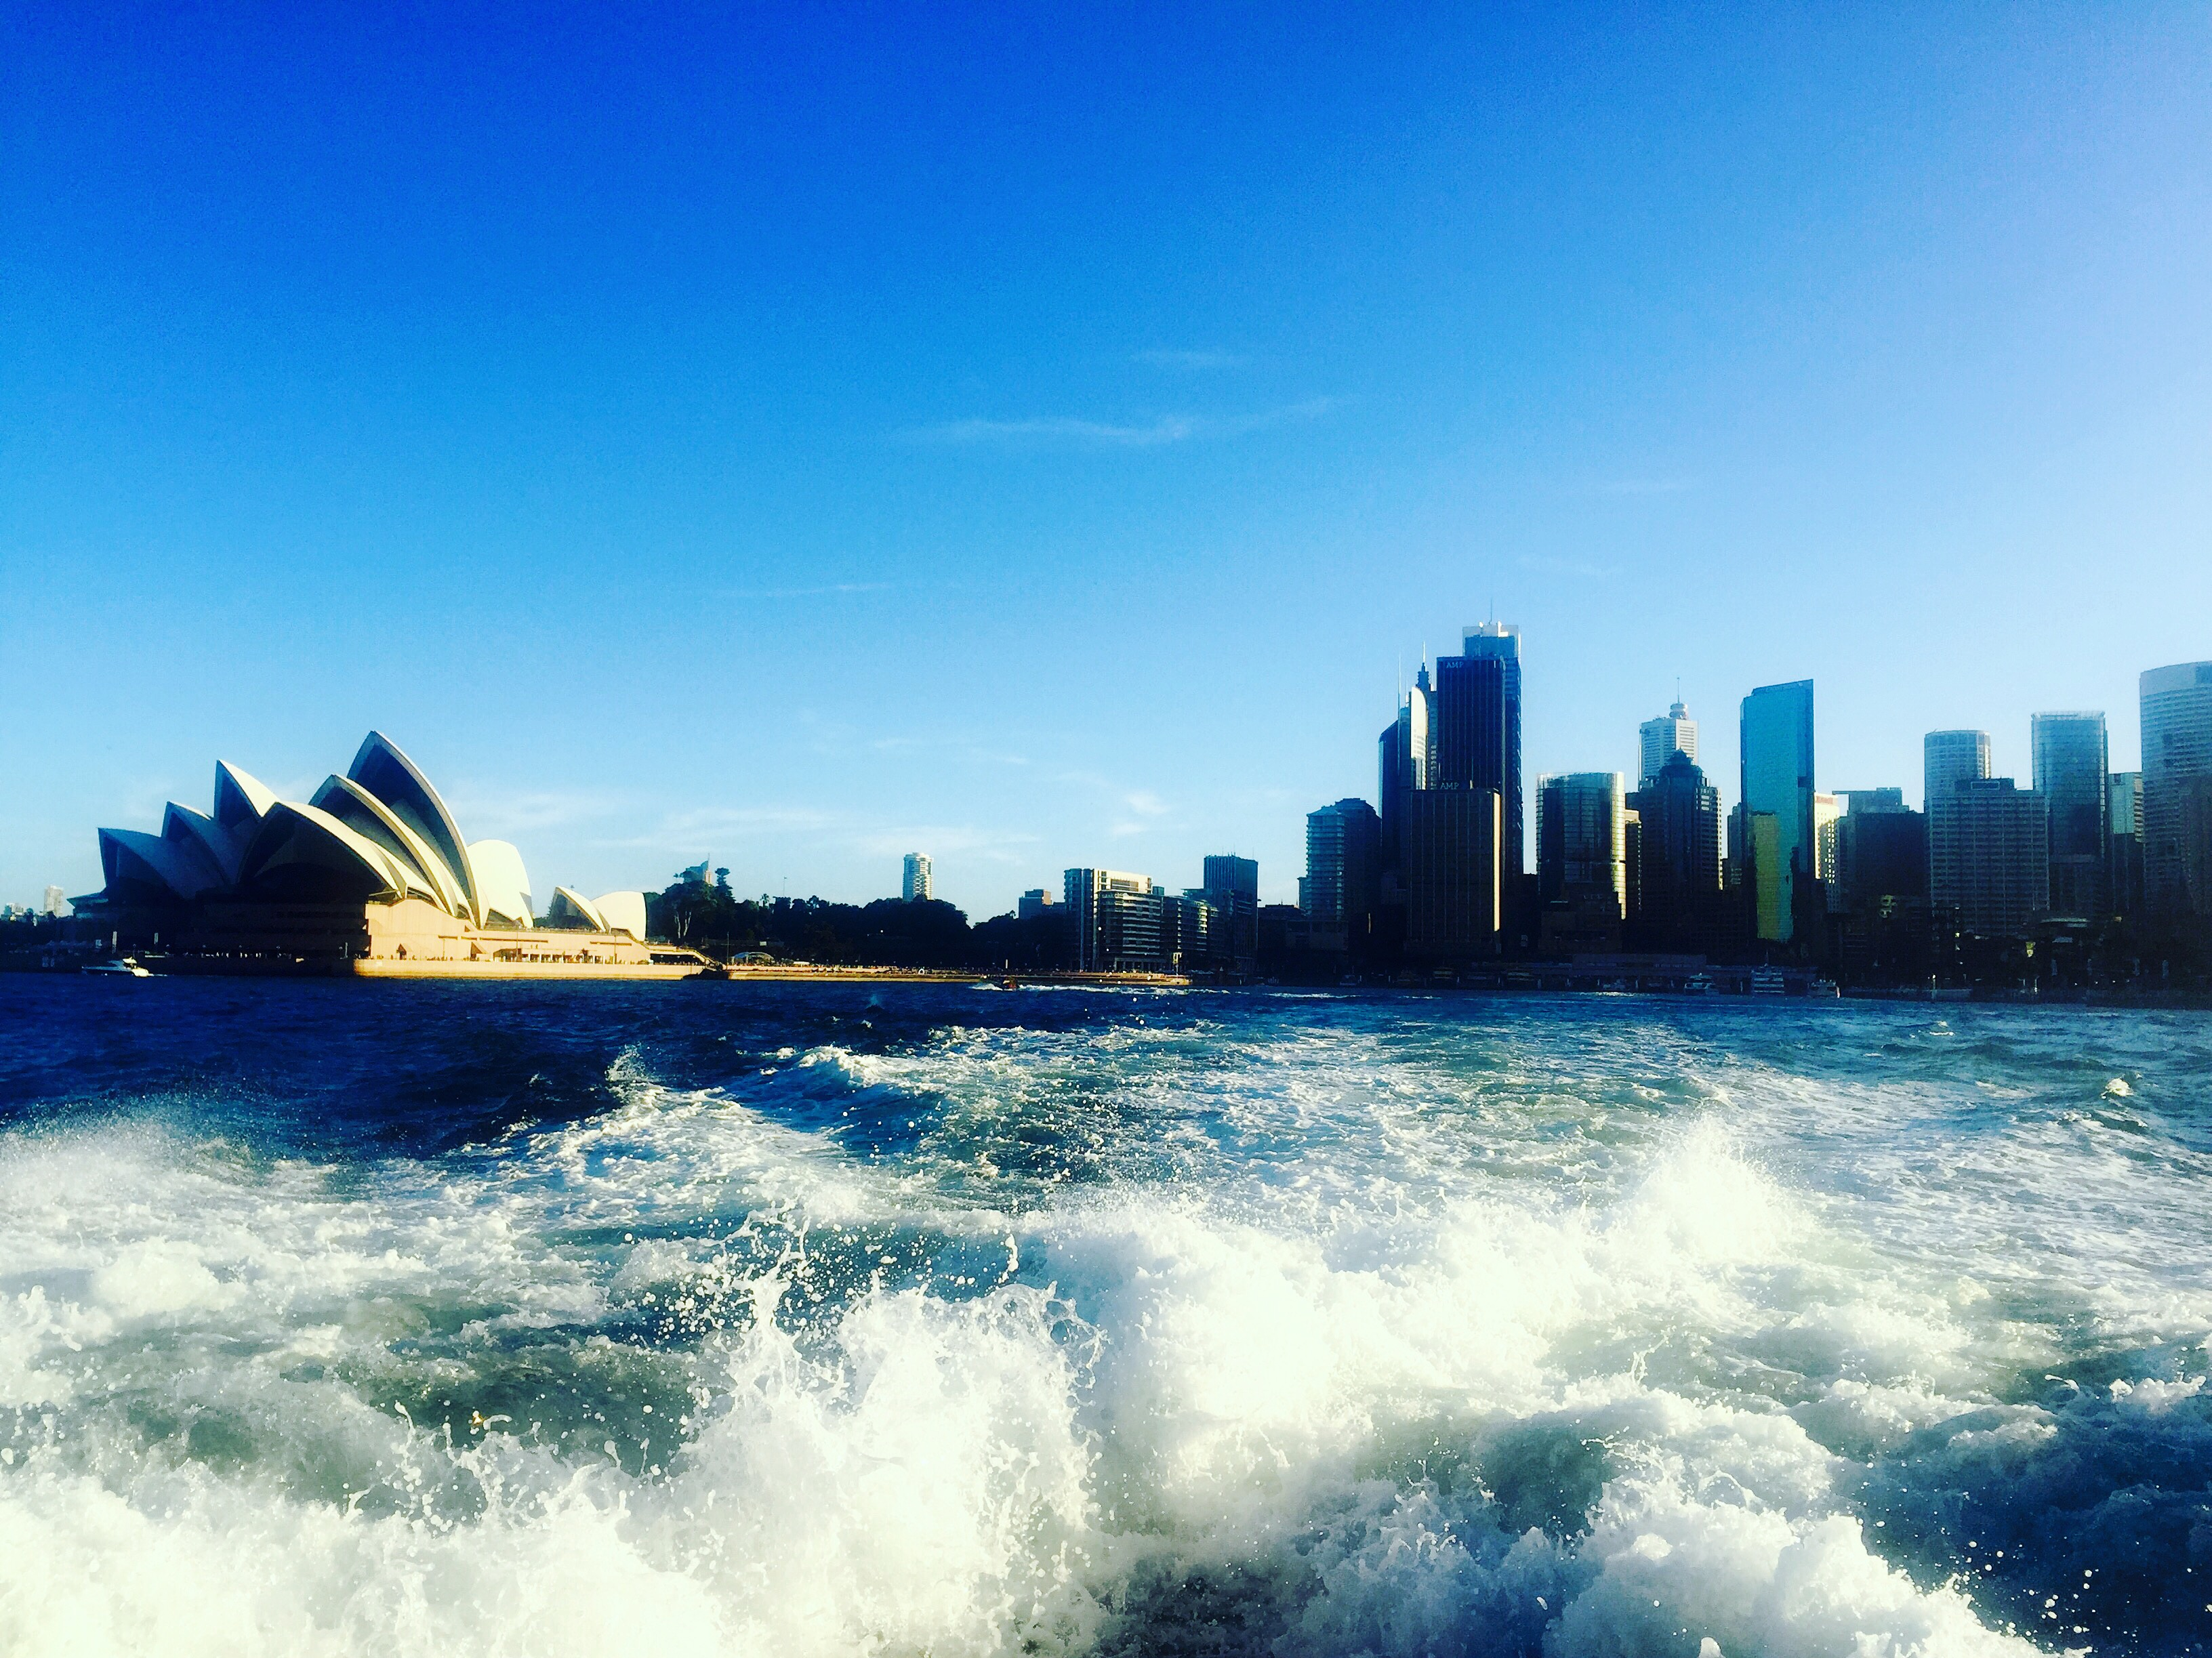 Sydney opera house view from boat